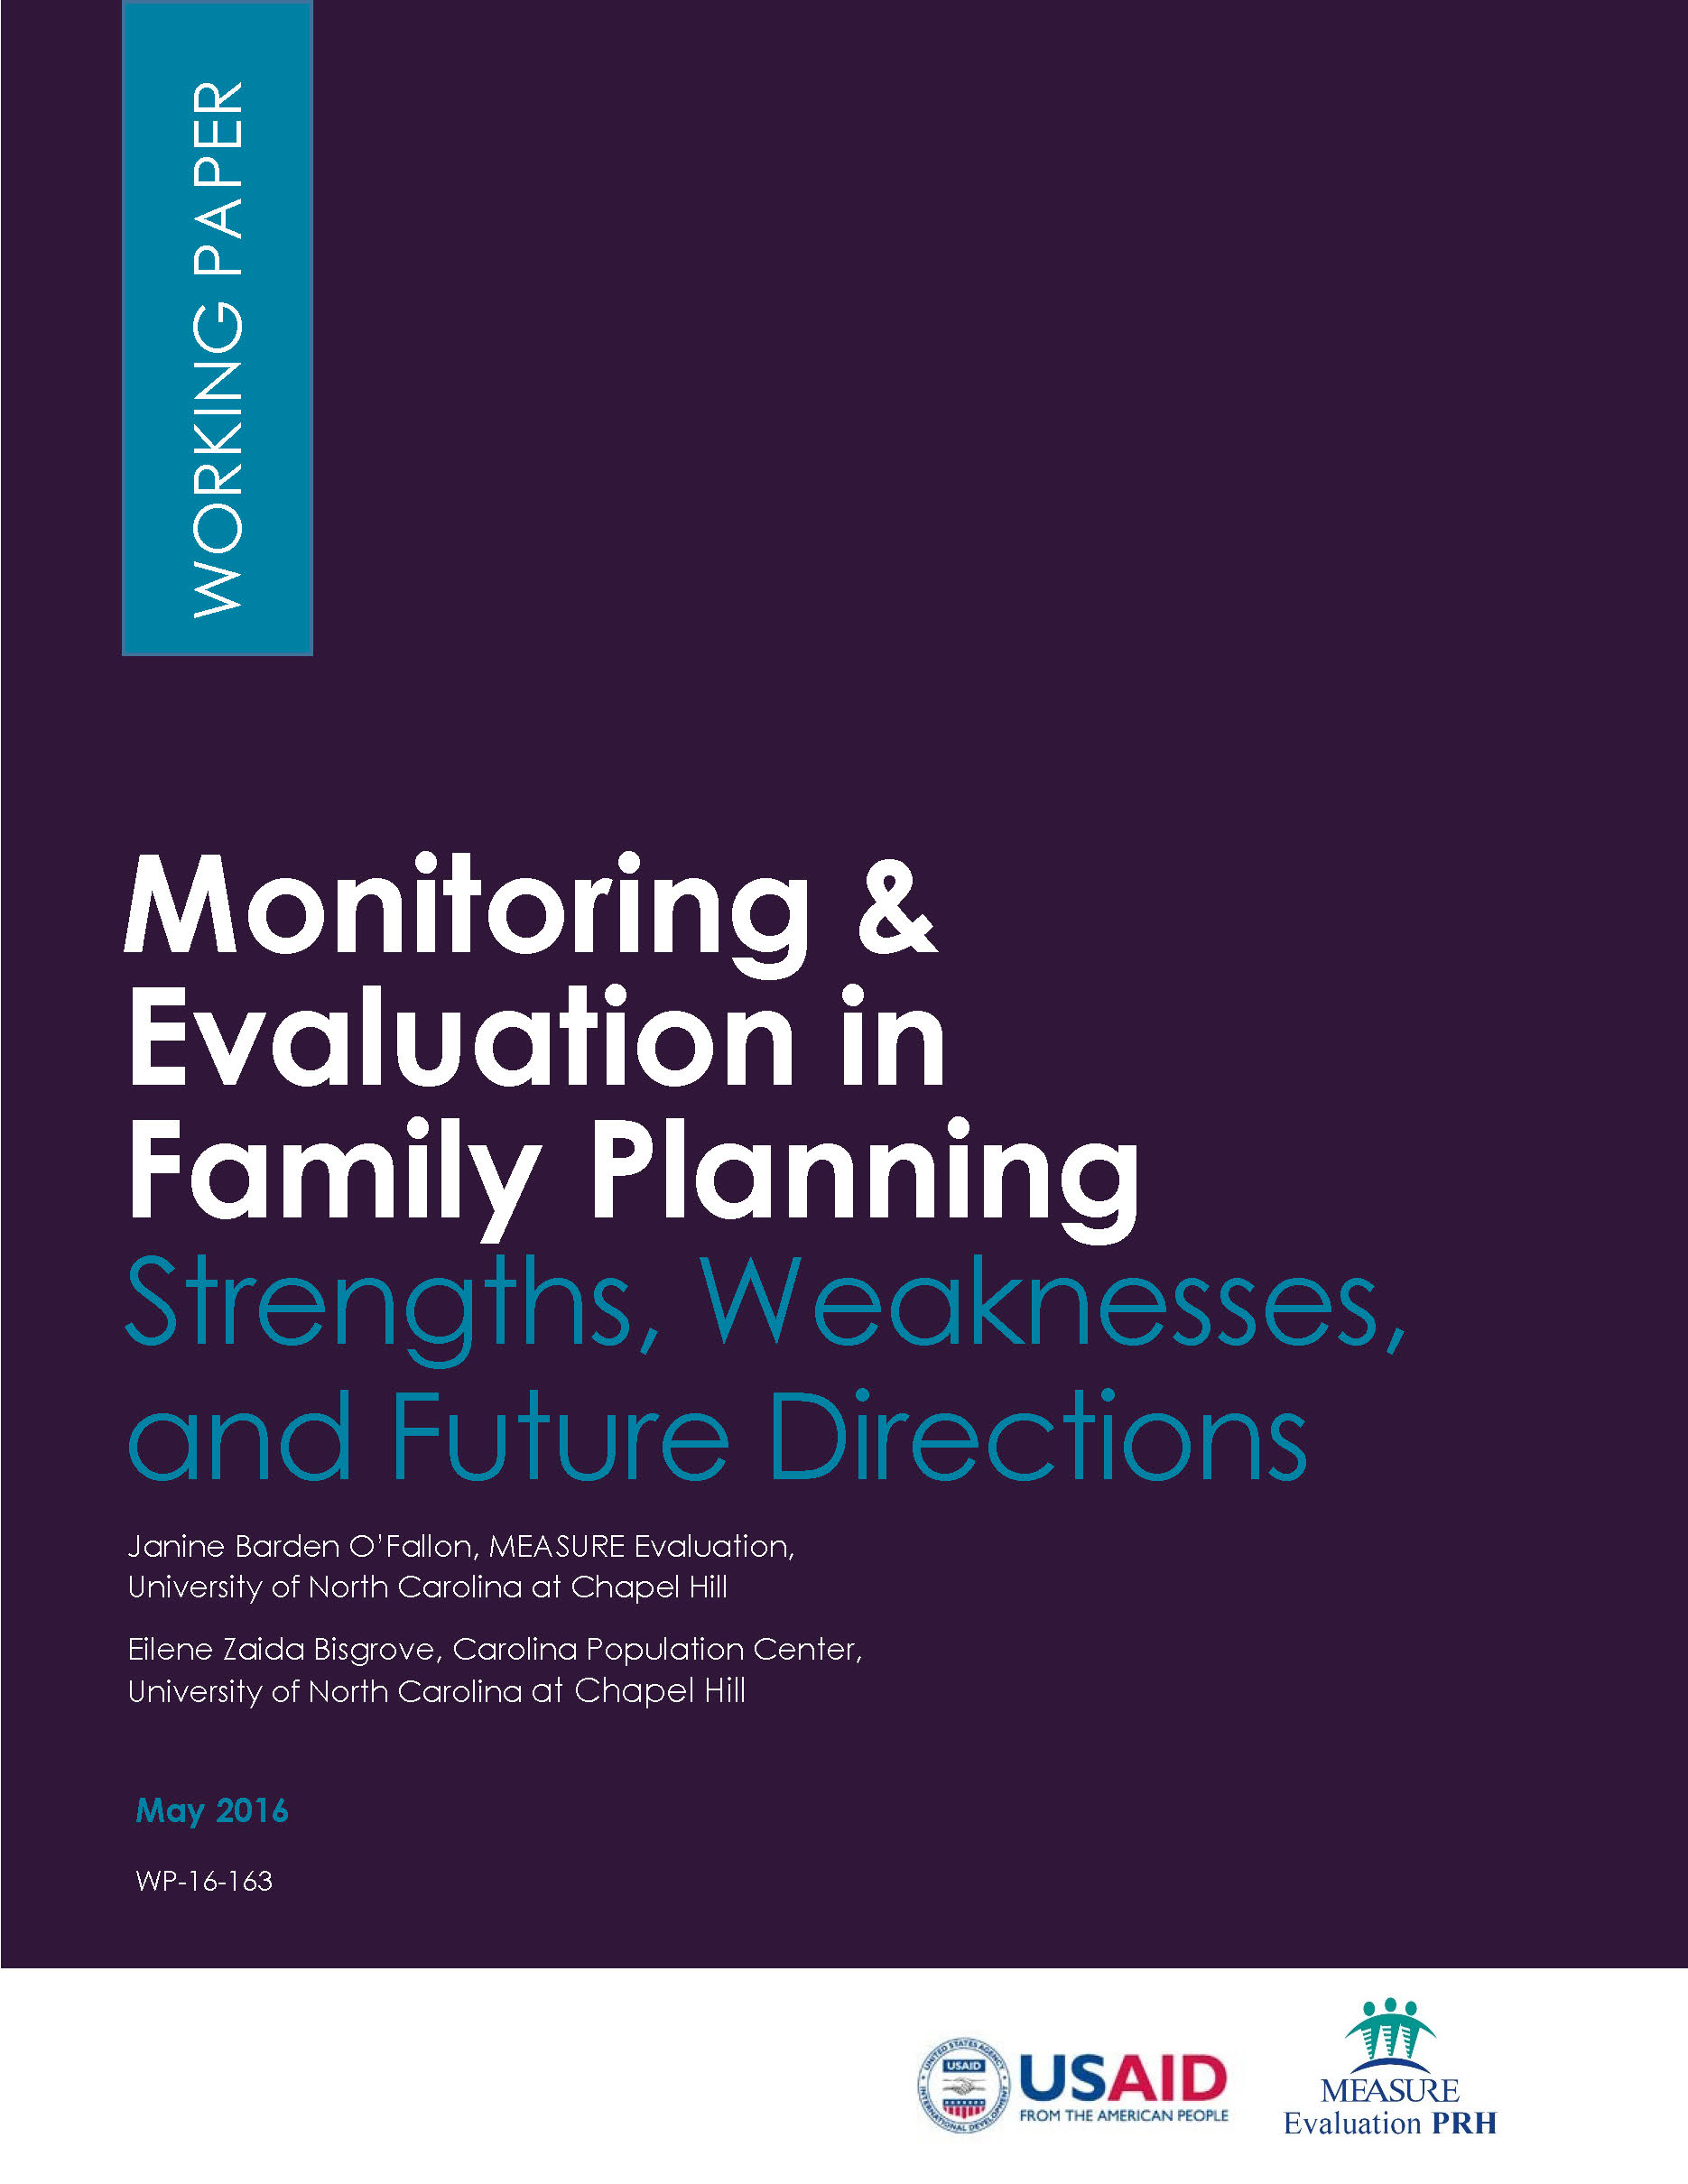 Monitoring & Evaluation in Family Planning: Strengths